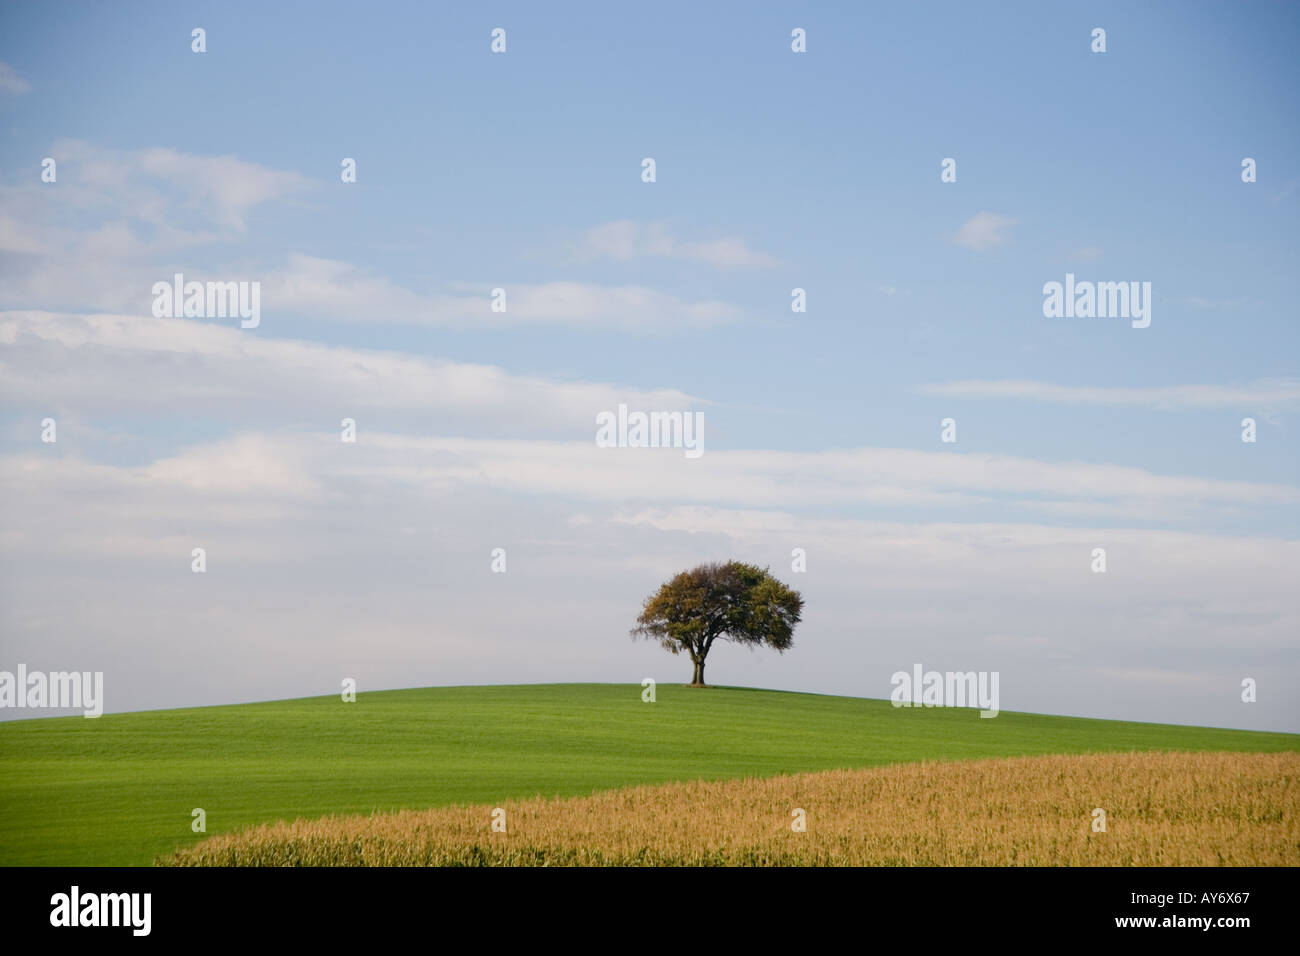 A single tree in a field of forage maize and grass - Stock Image